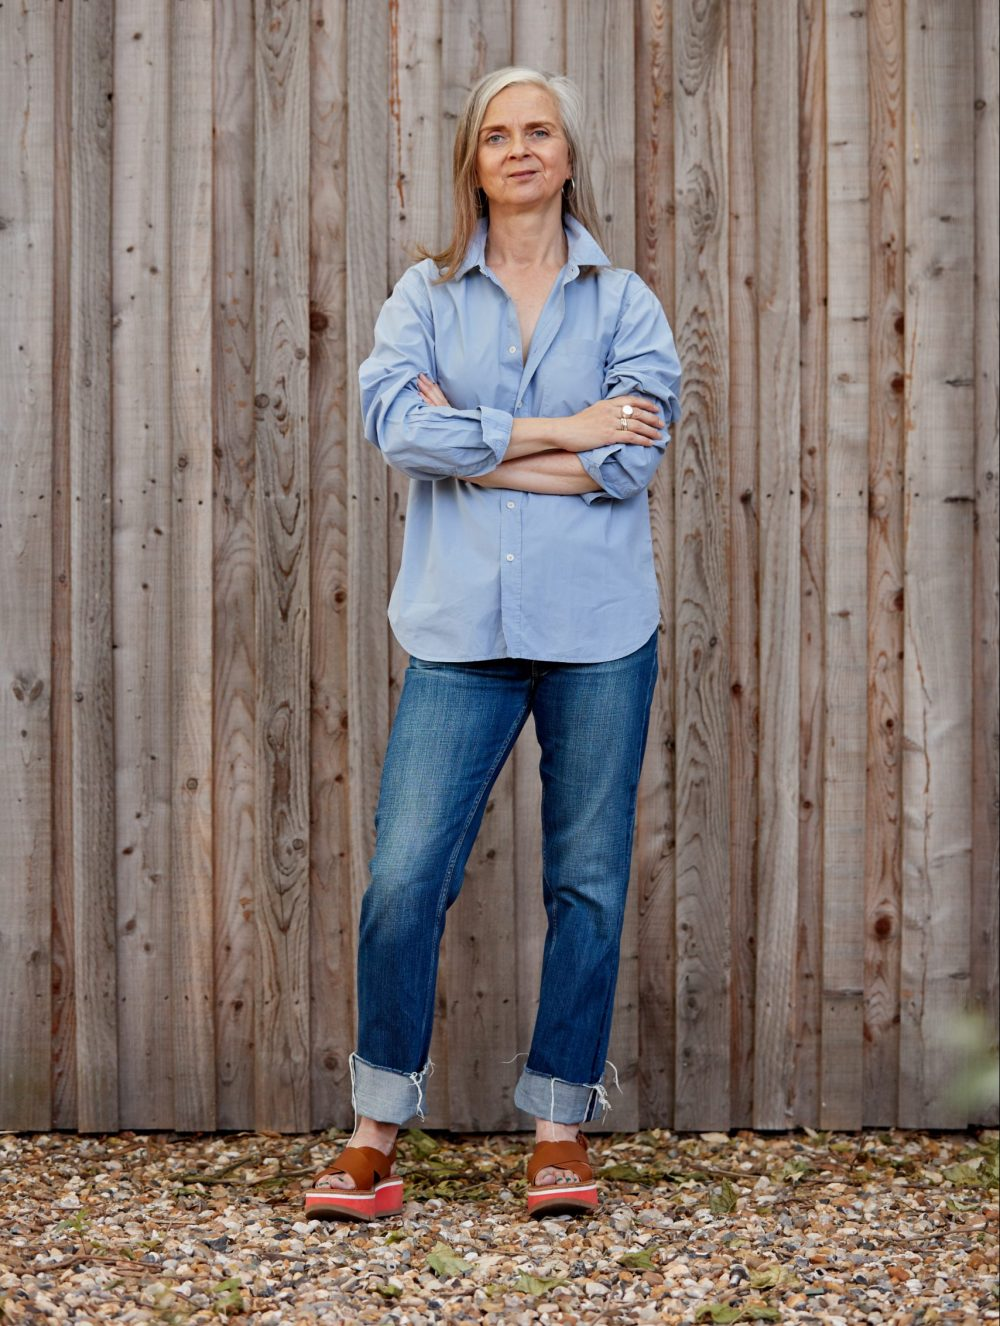 Grown-up style staple: The Lovely Blue Shirt